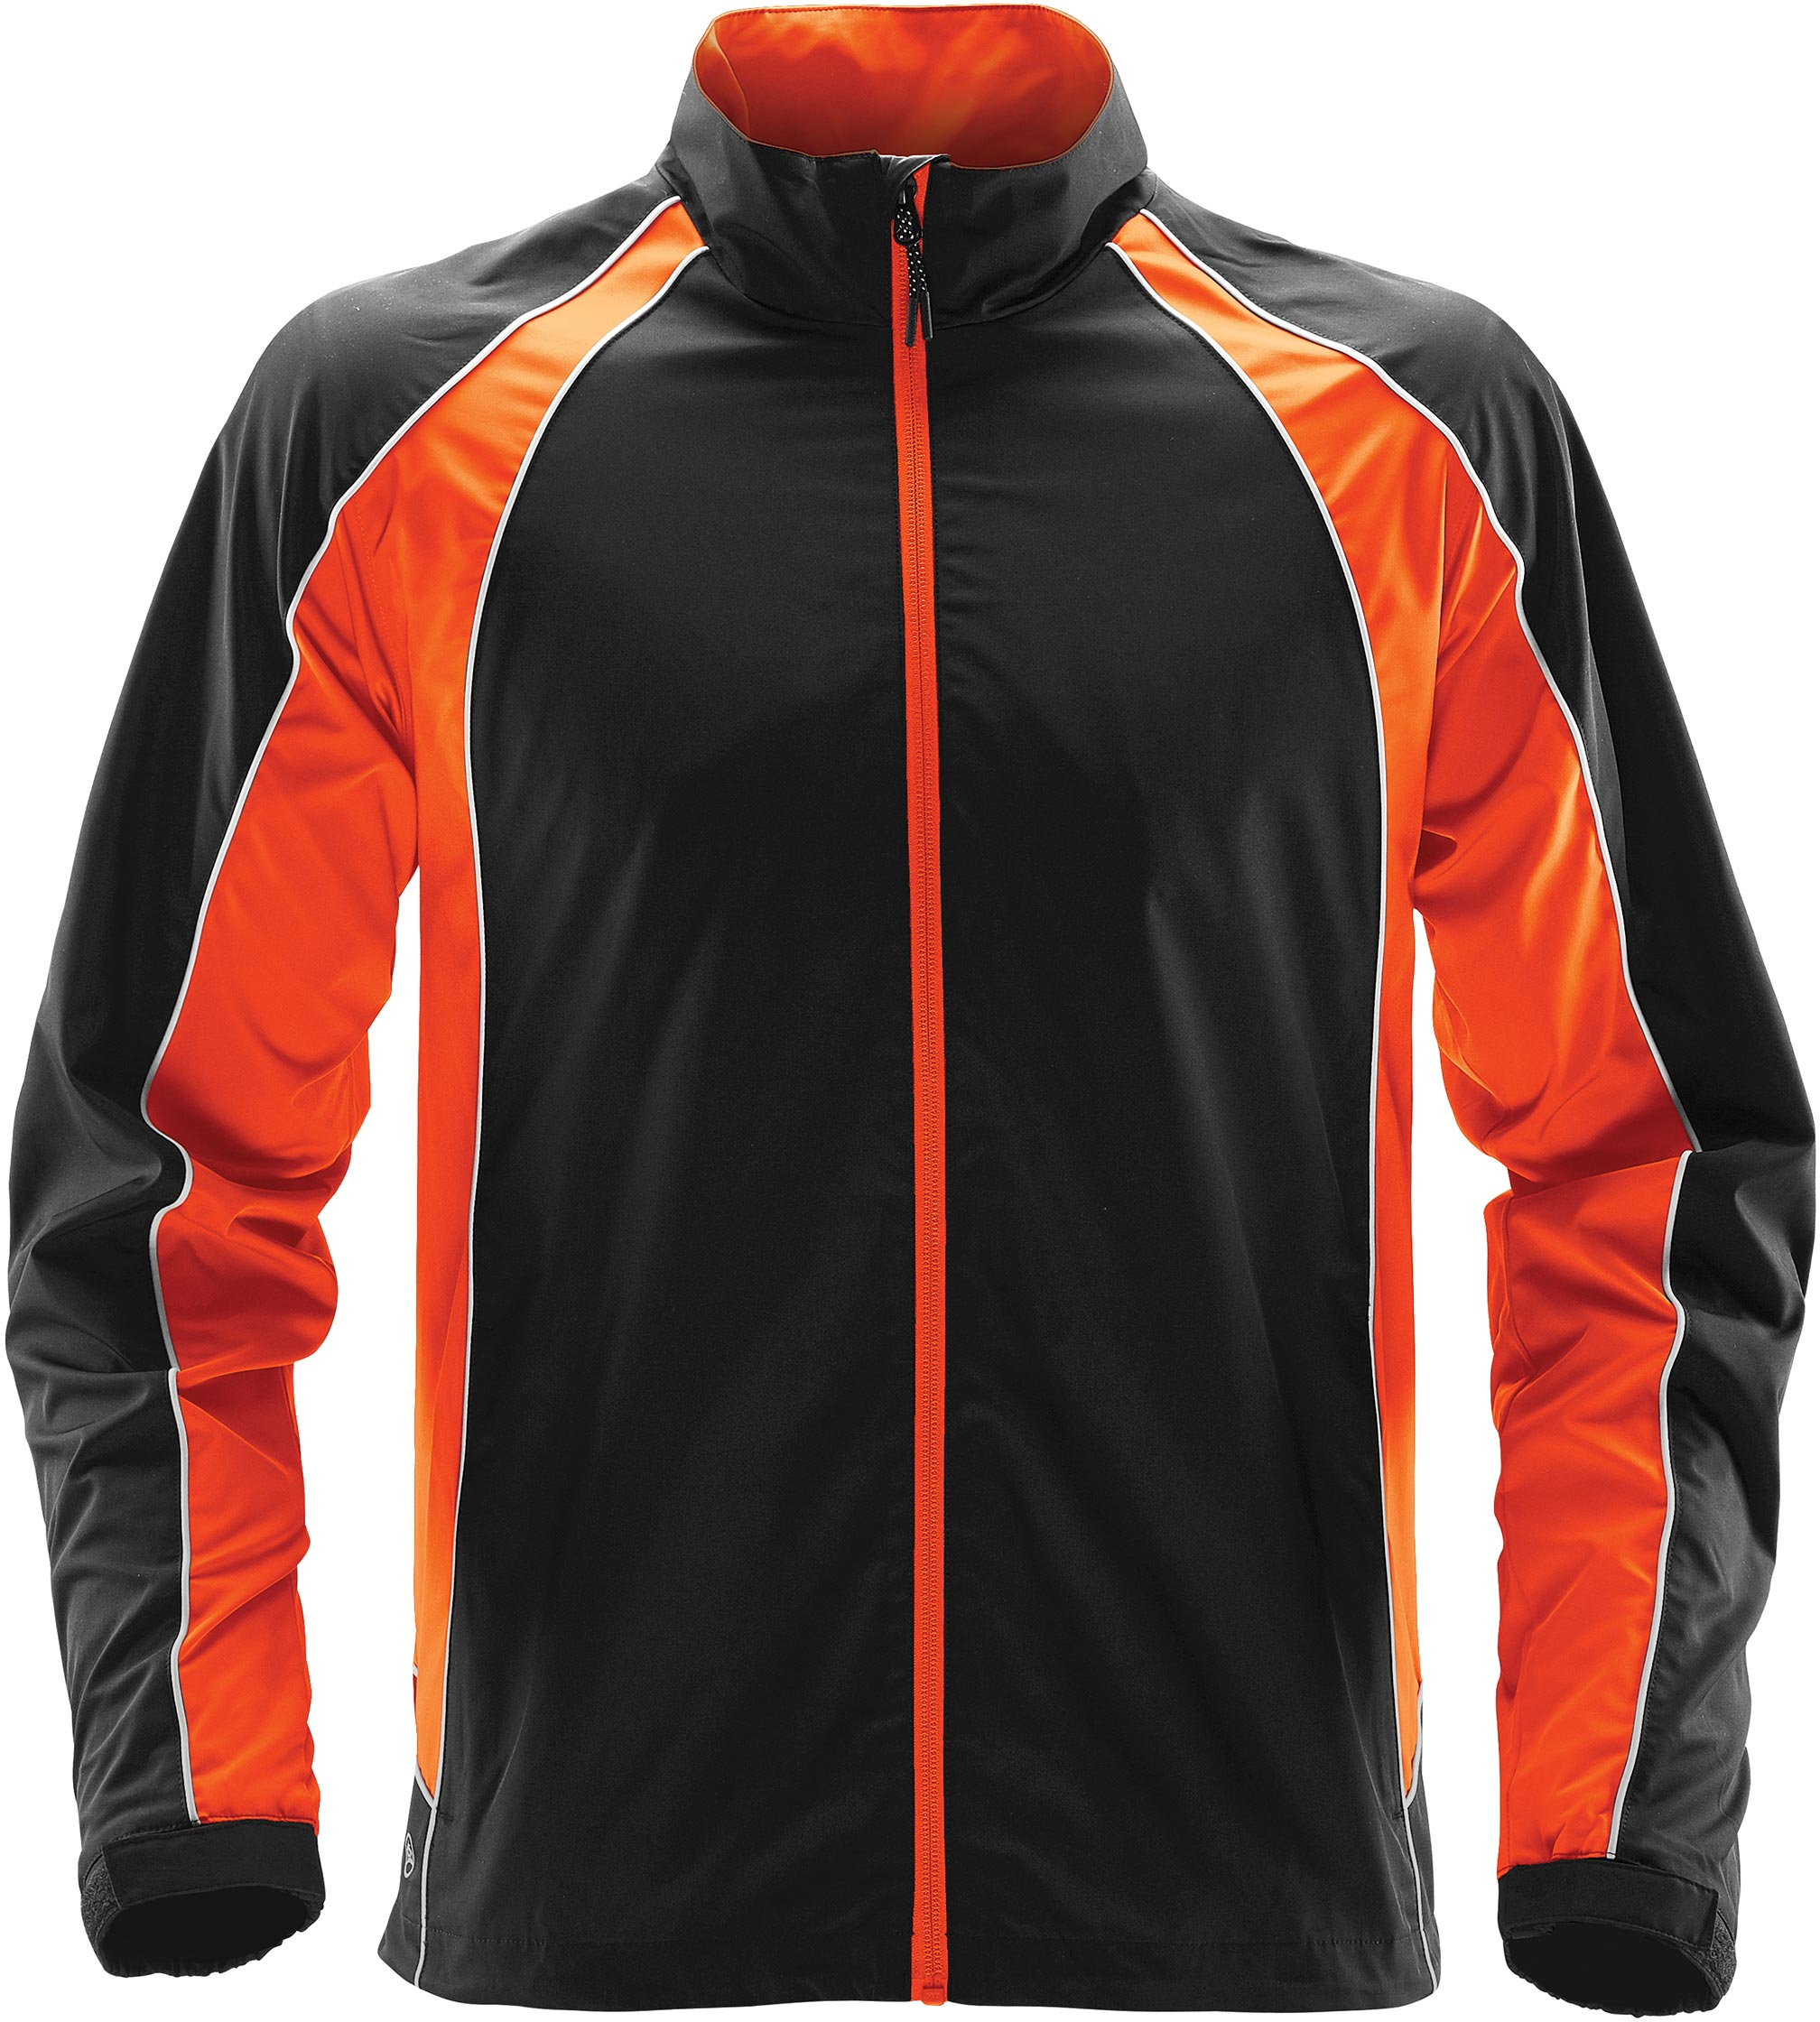 STORMTECH YOUTH WARRIOR TRAINING JACKET